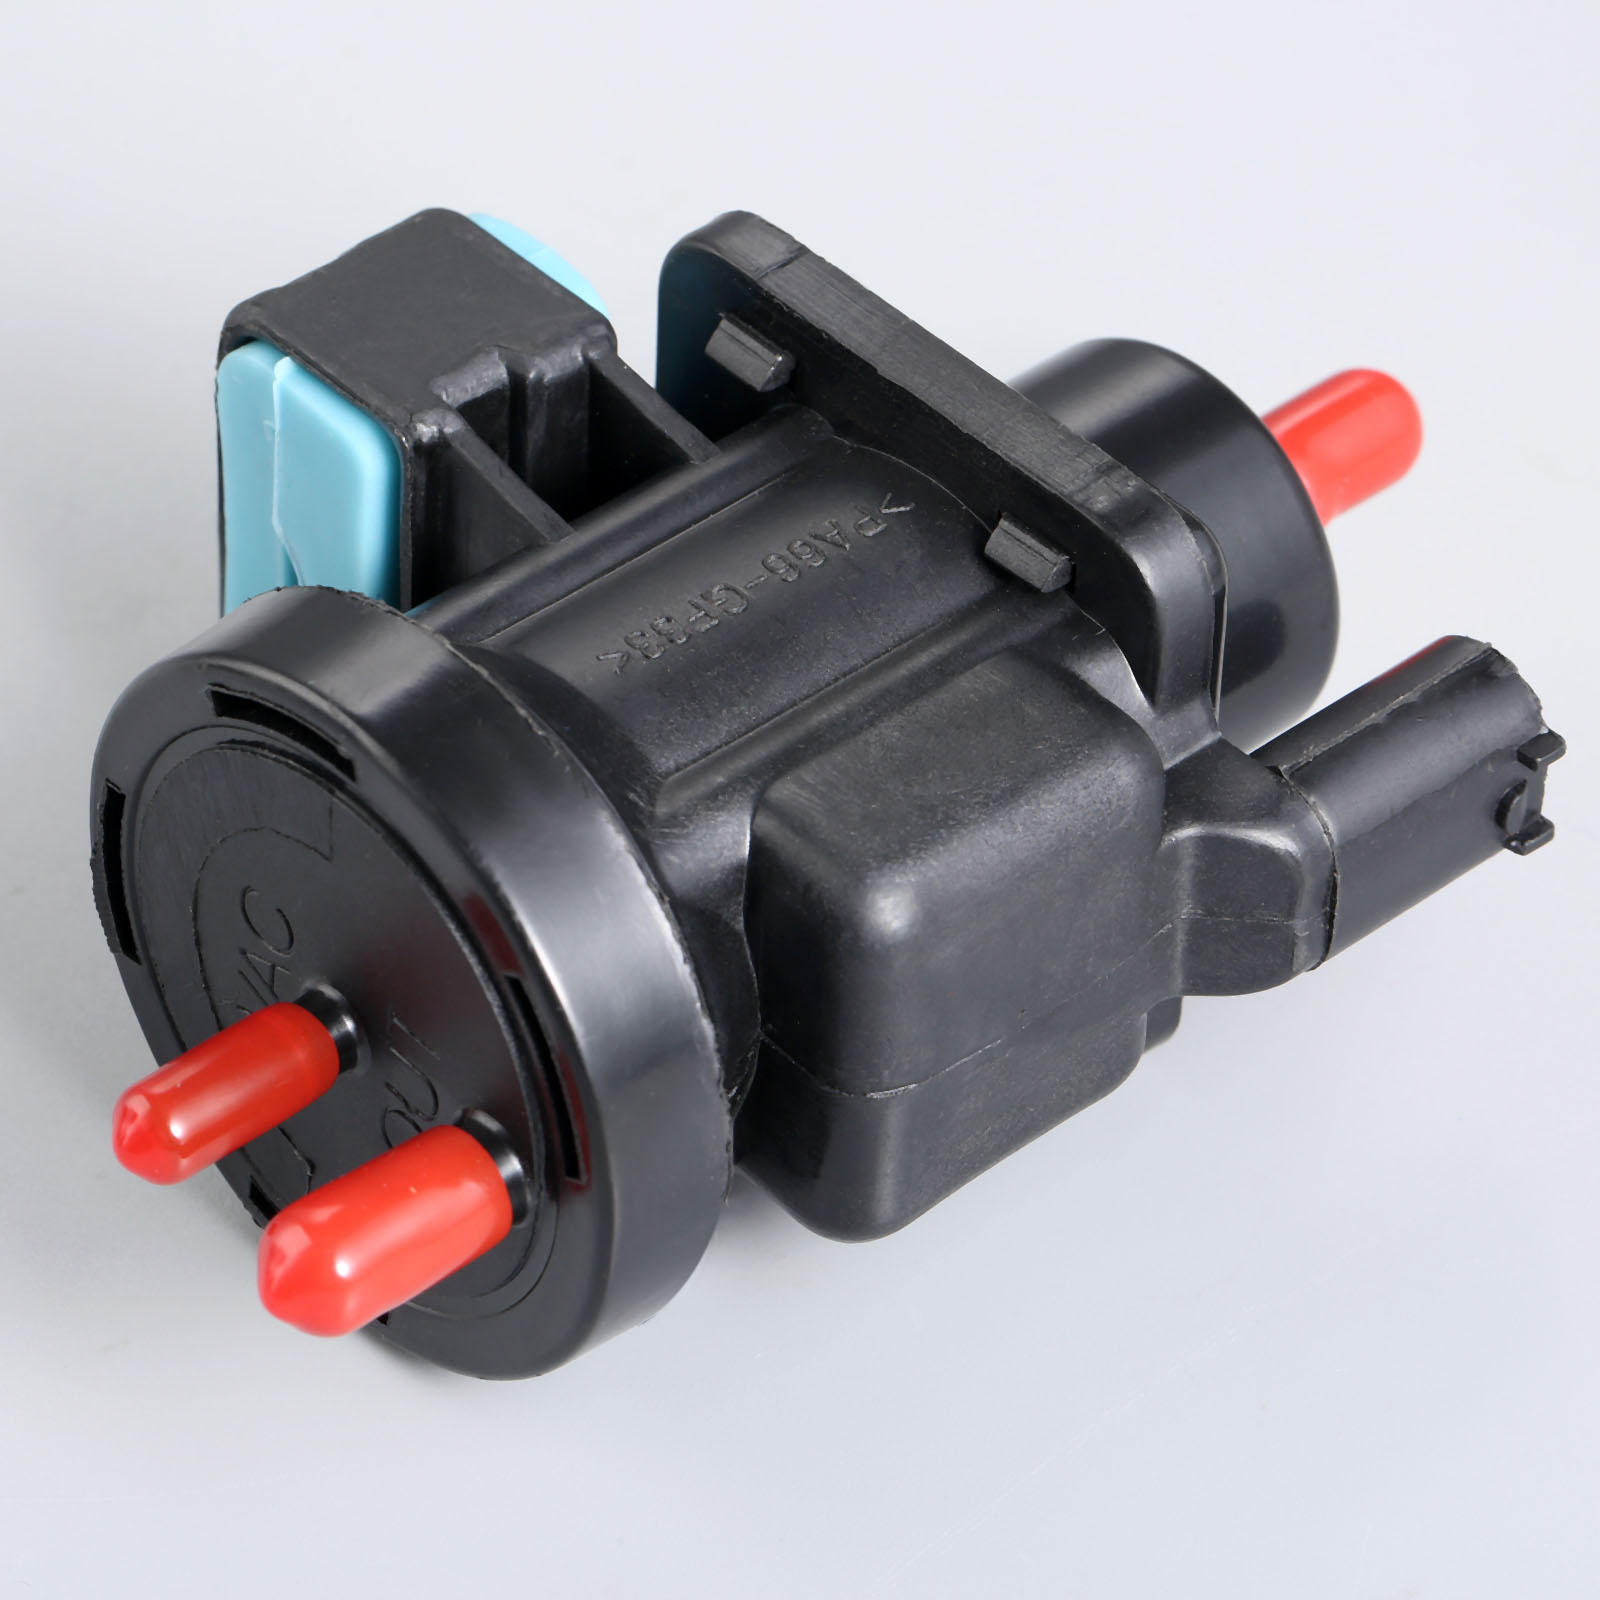 Turbo Boost Valve Pressure Converter Sprinter A0005450527 0005450427 0005450527 <font><b>A0005450427</b></font> fit For Jeep Mercedes-Benz image